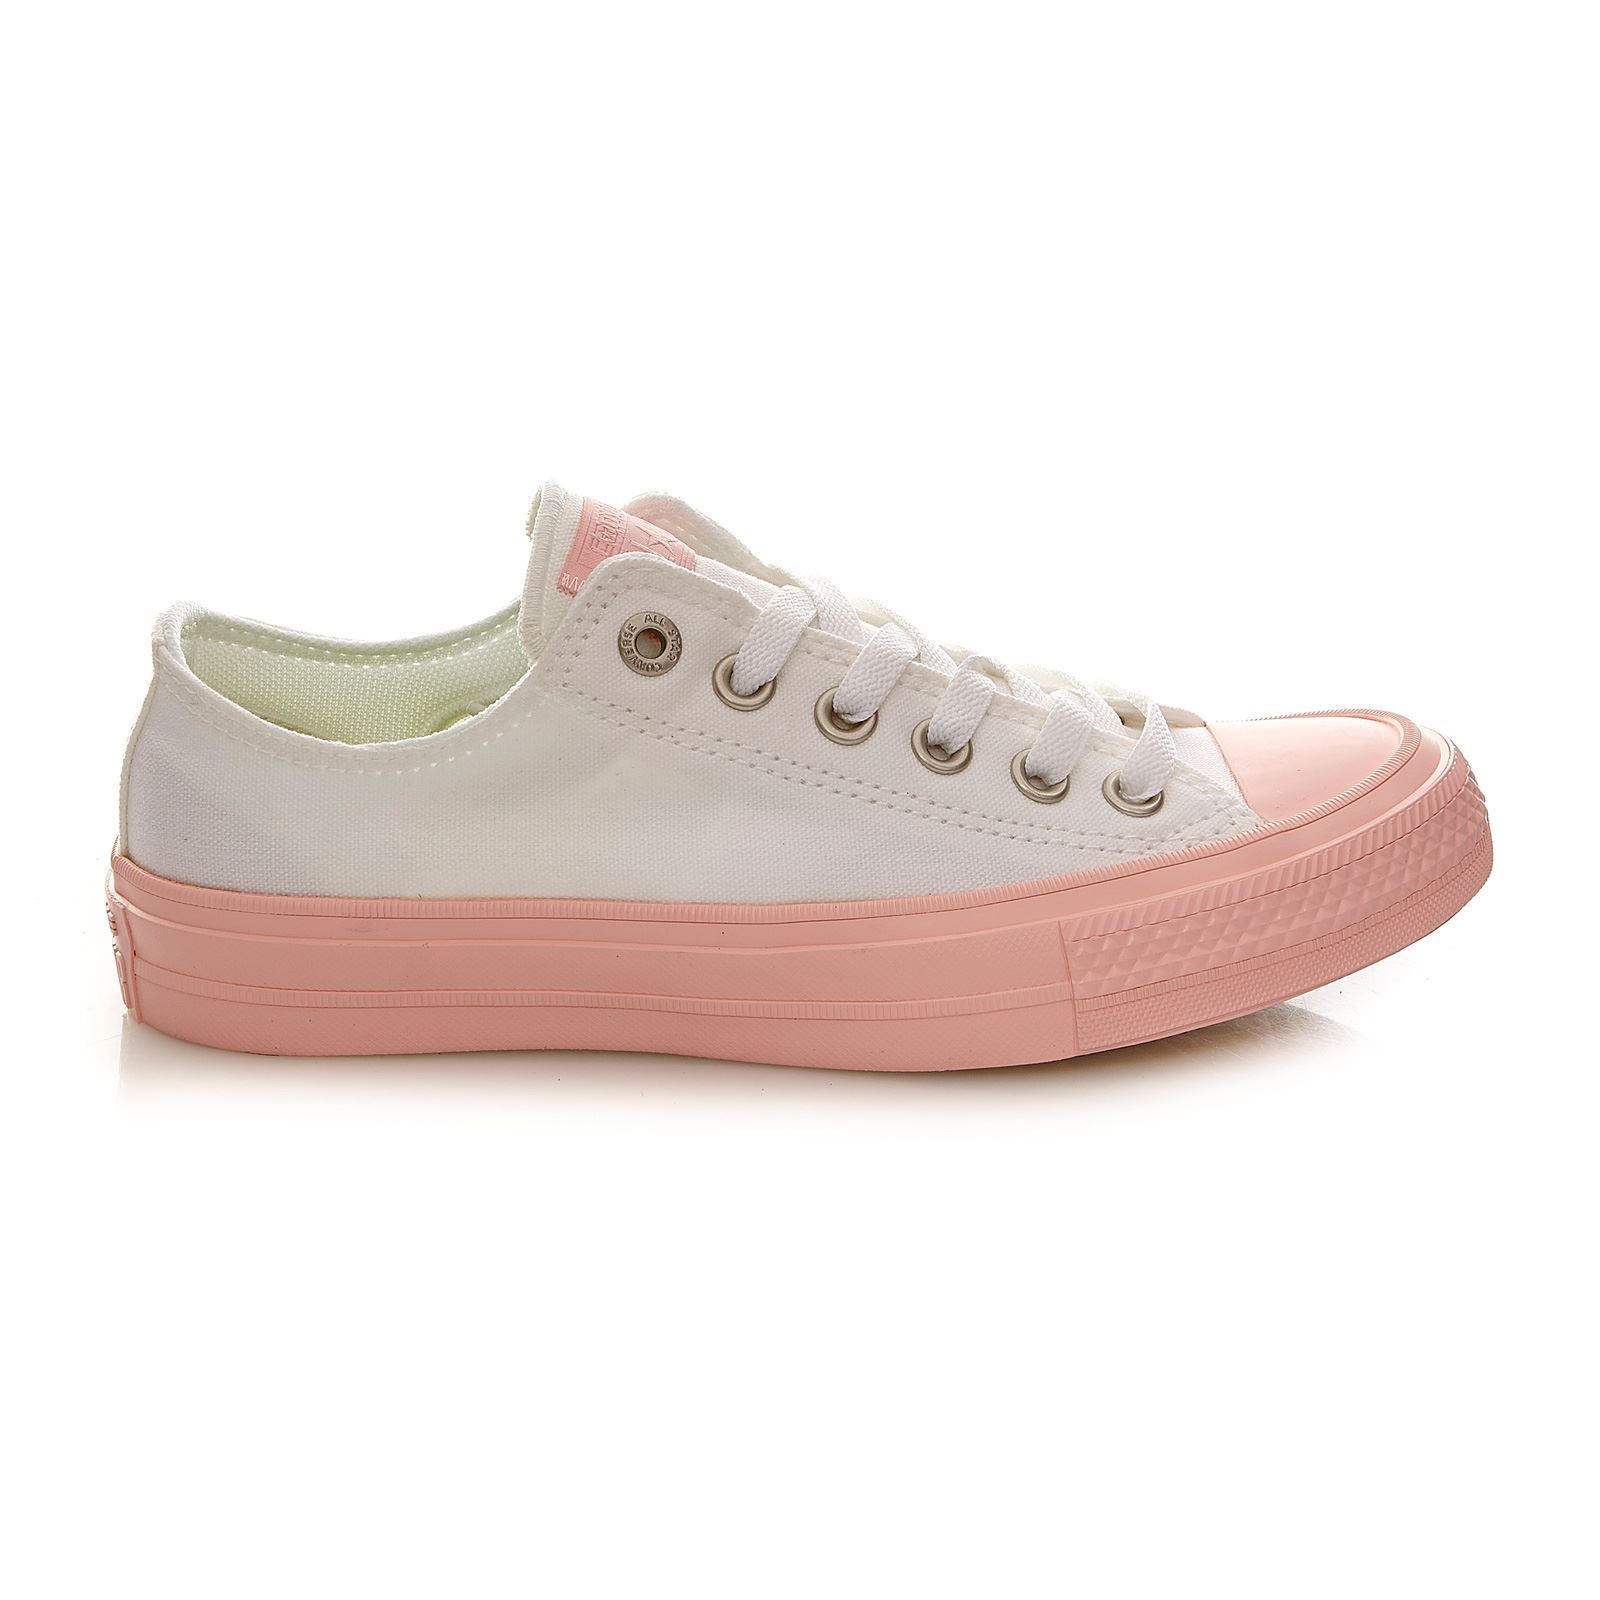 Converse Chuck Taylor All Star II Ox - Baskets - bicolore 1EIple